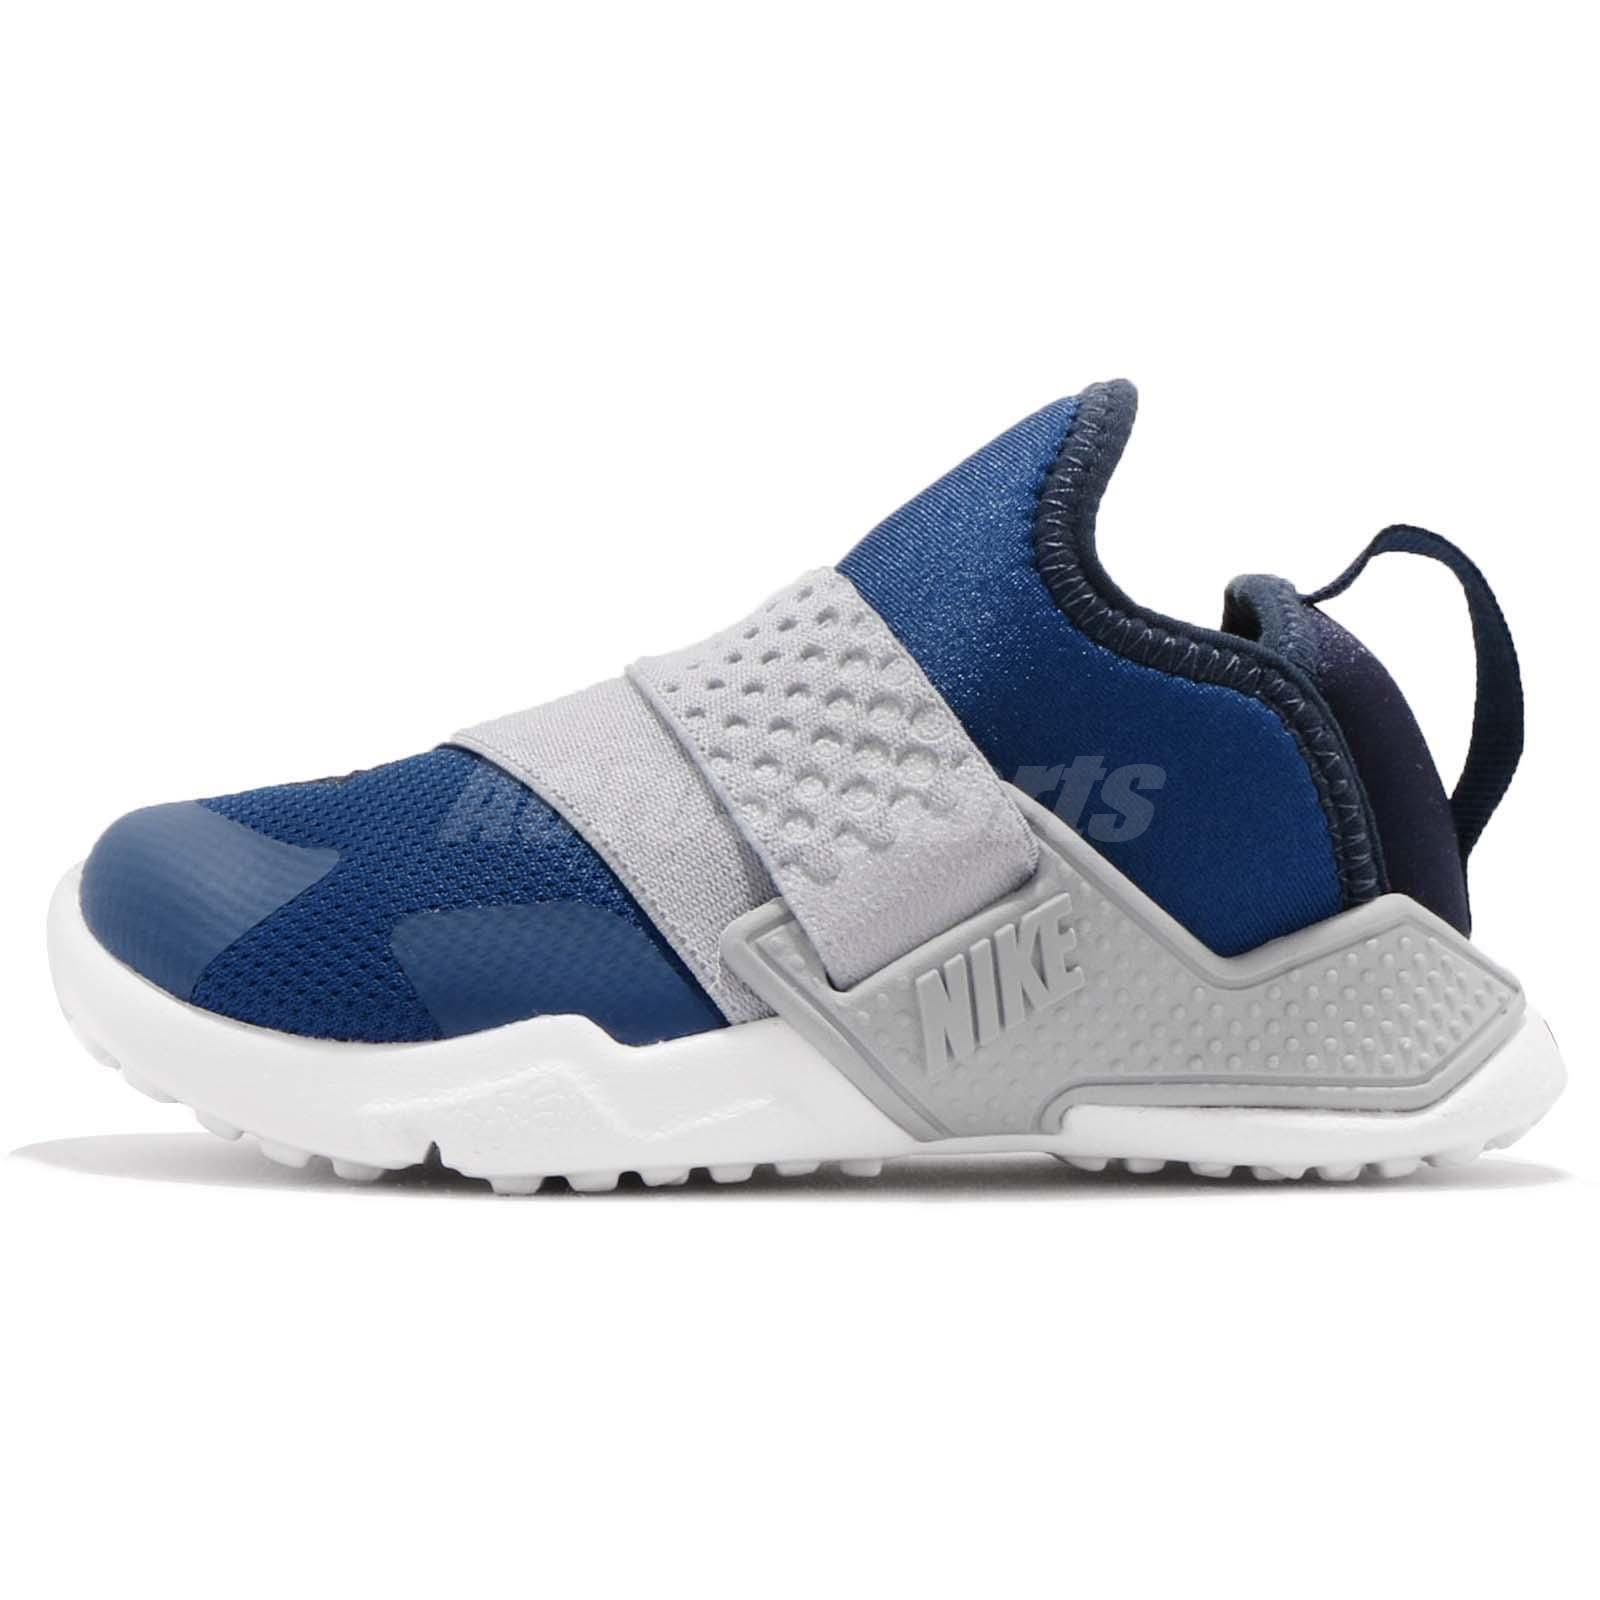 07508a8d1 Nike Huarache Extreme TD Blue Grey White Toddler Infant Baby Shoes  AH7827-401